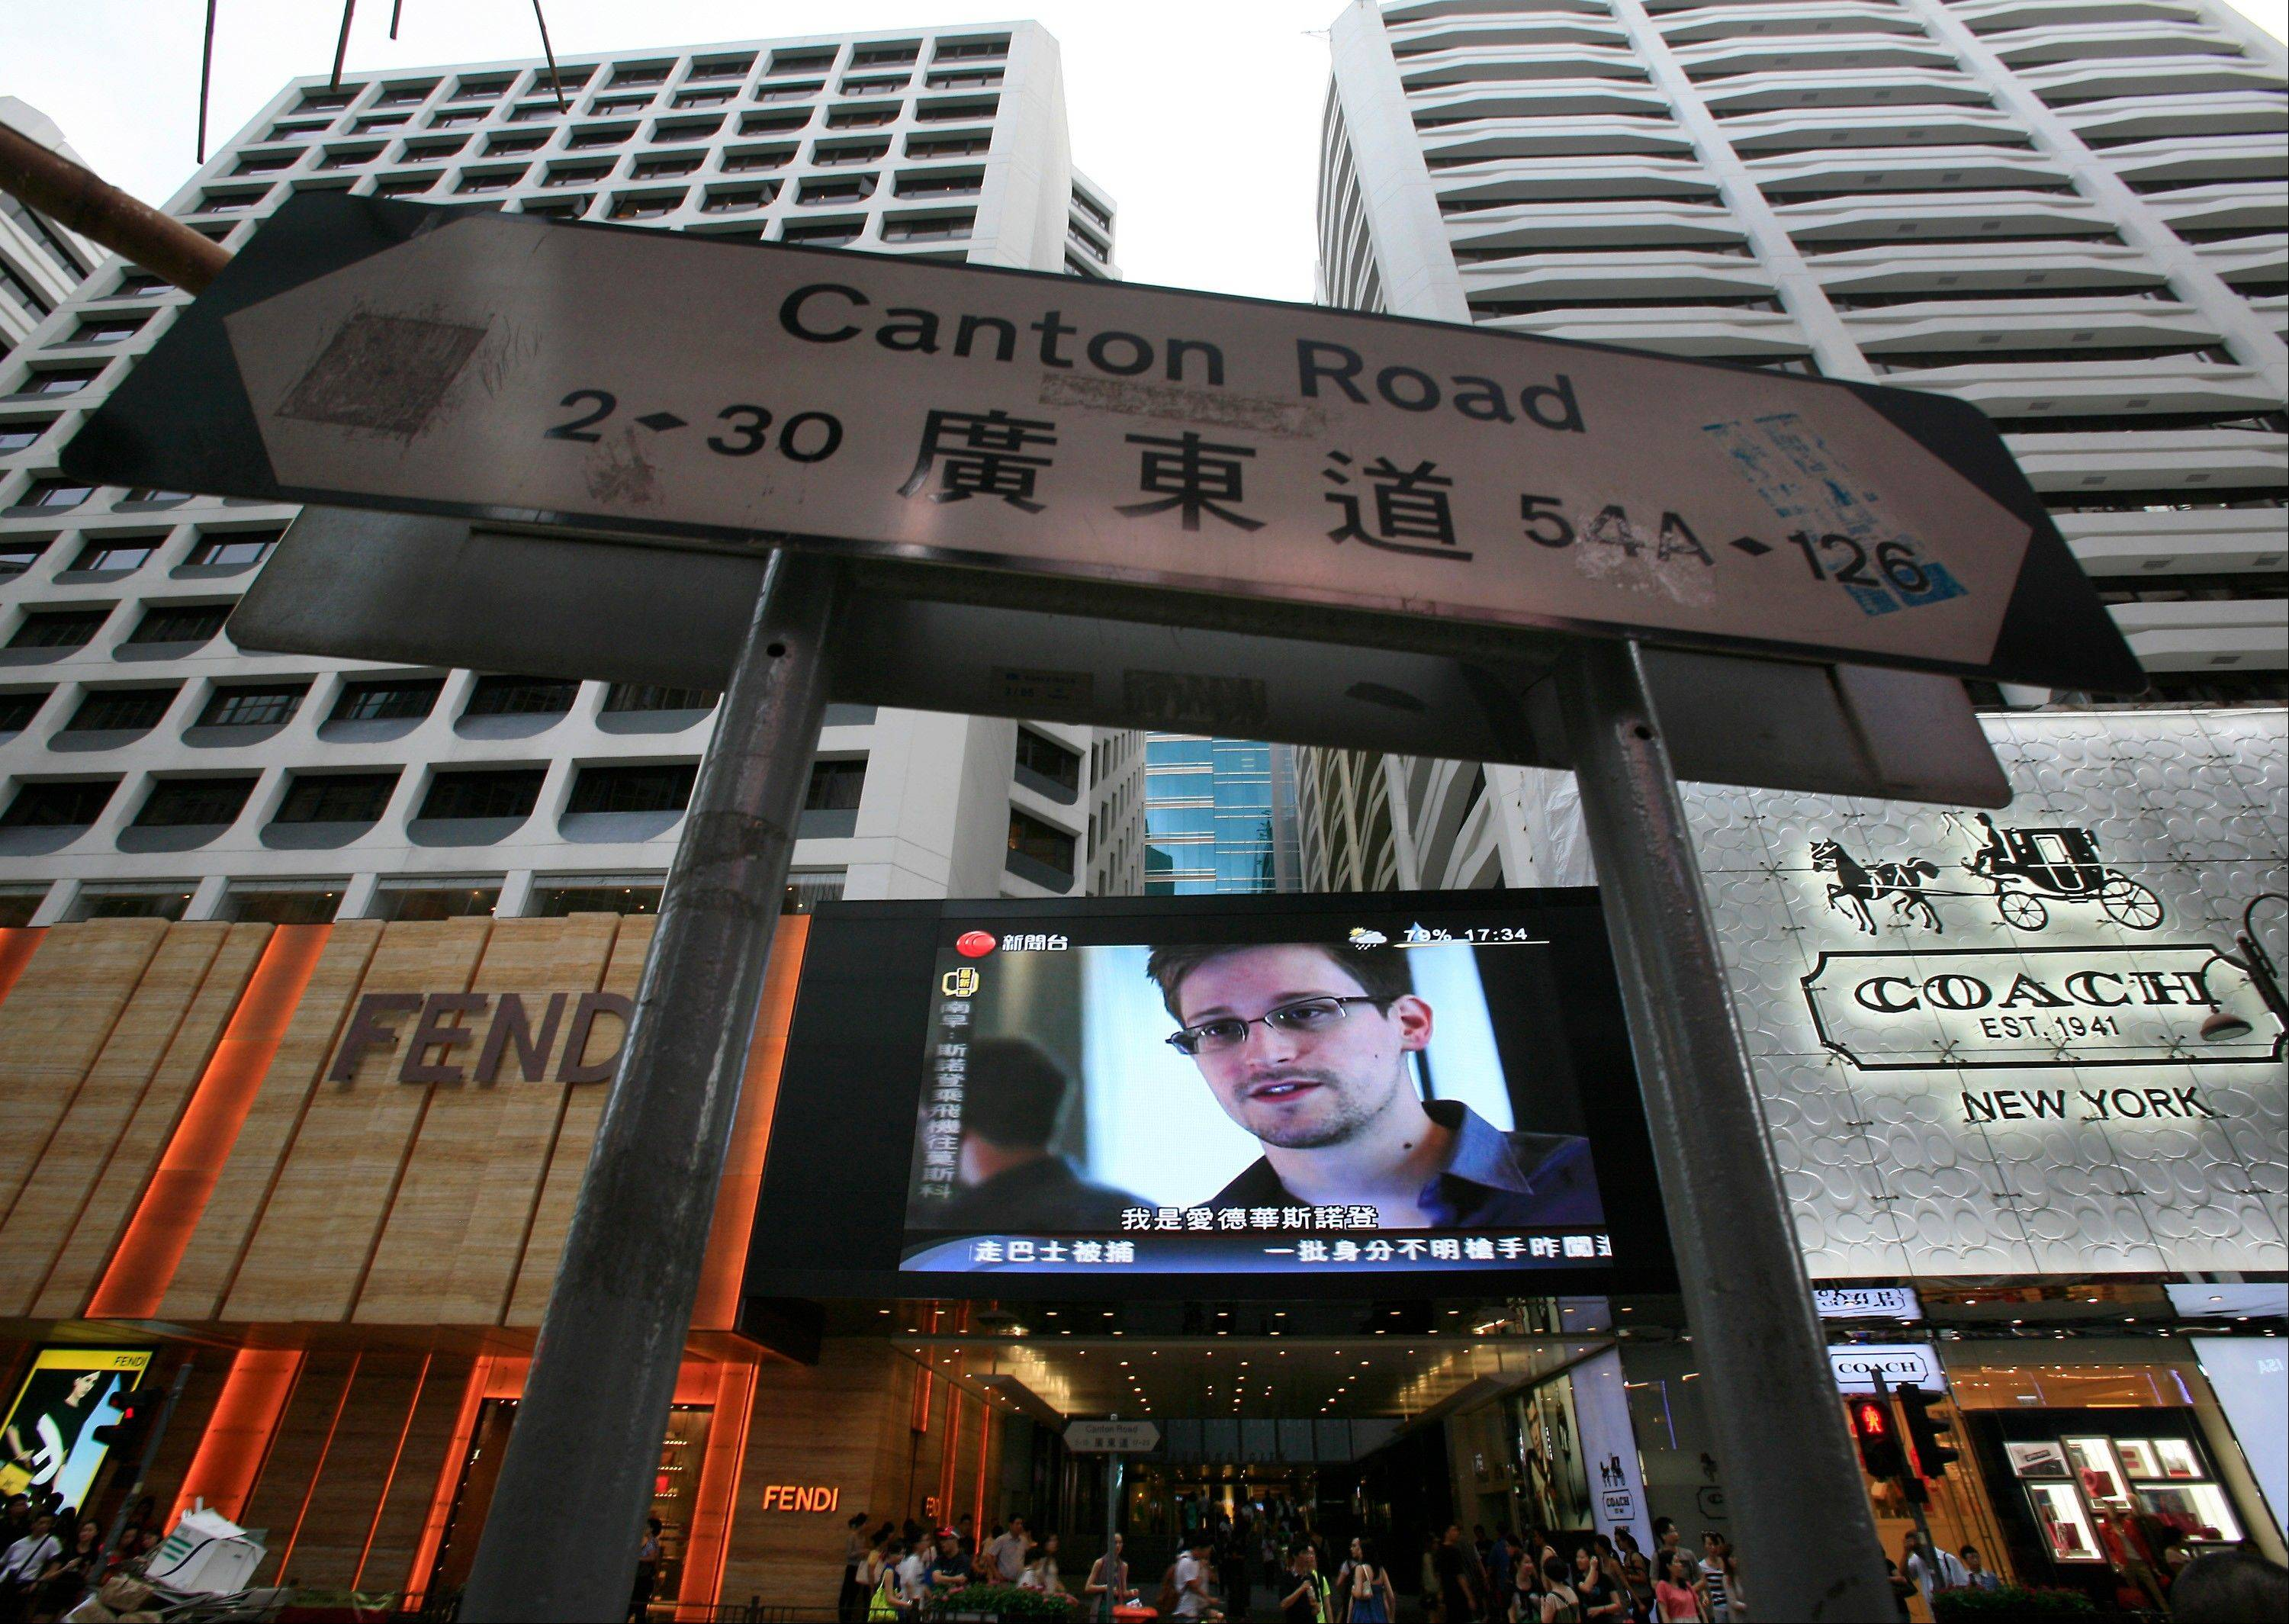 In this June 23, 2013 file photo, a television screen shows a news report of Edward Snowden, a former CIA employee who leaked top-secret documents about sweeping U.S. surveillance programs, at a shopping mall in Hong Kong.